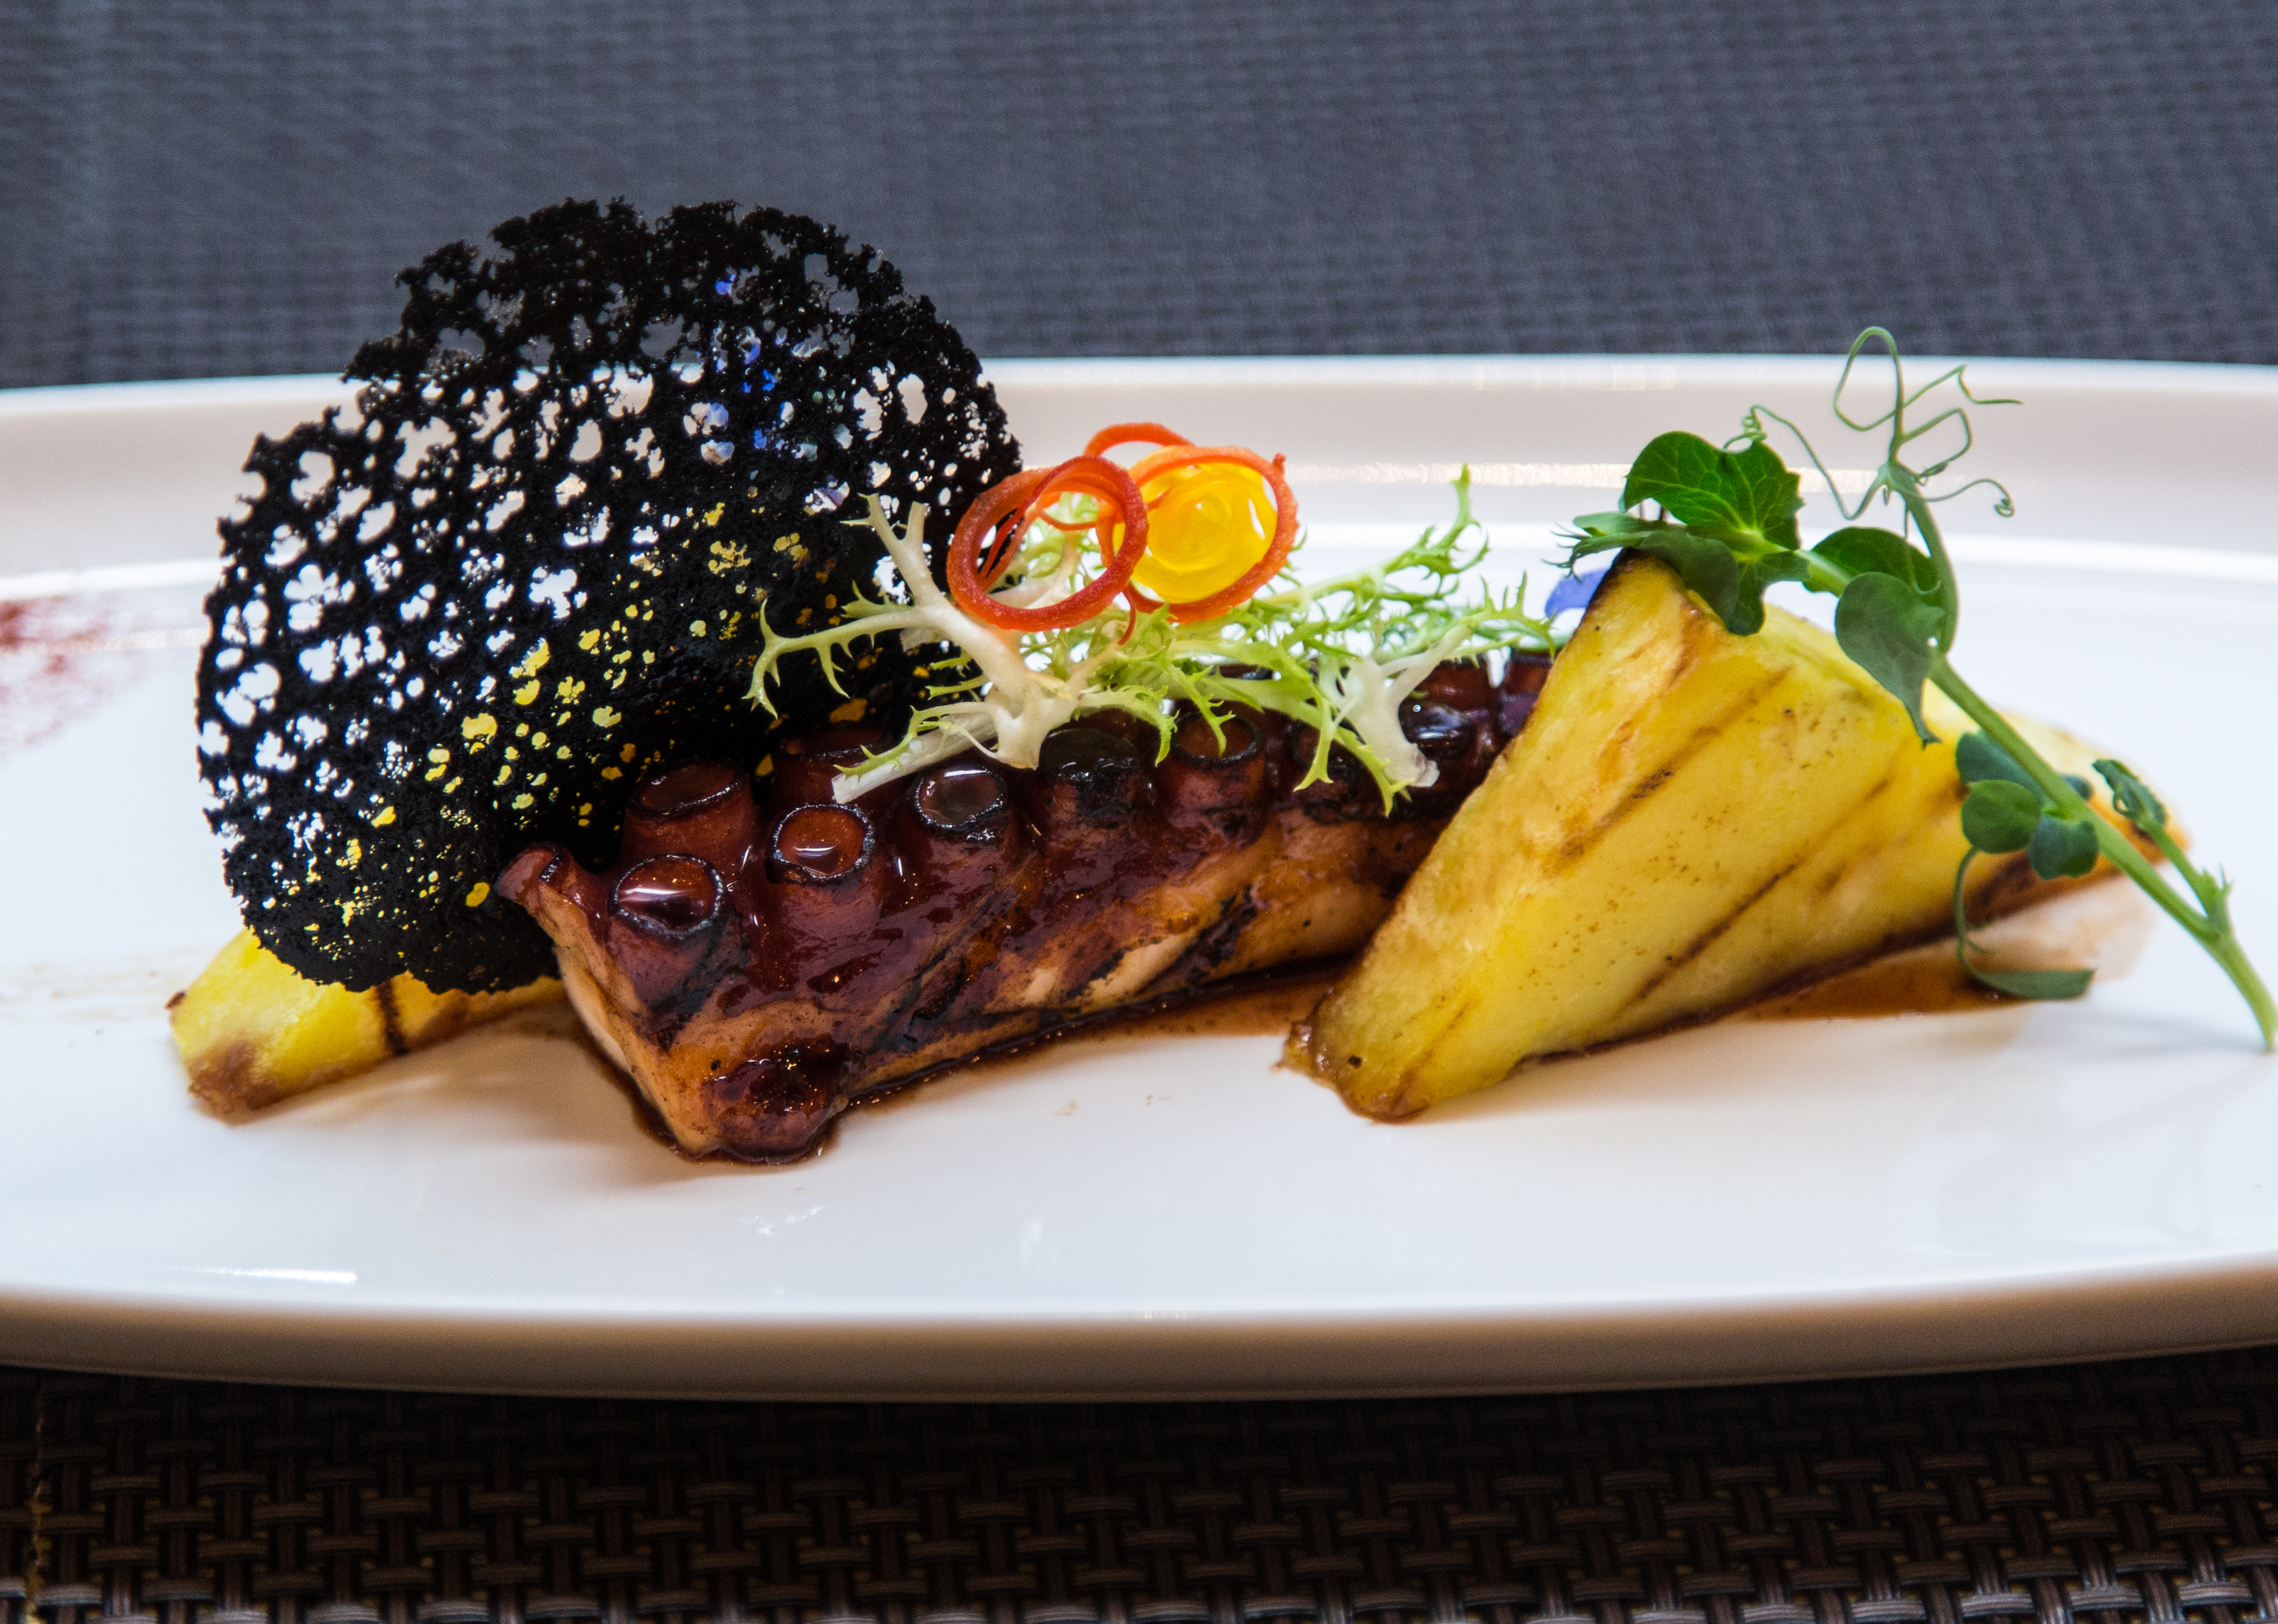 Authentic South American Steak in Muscat at Sheraton's Asado Restaurant